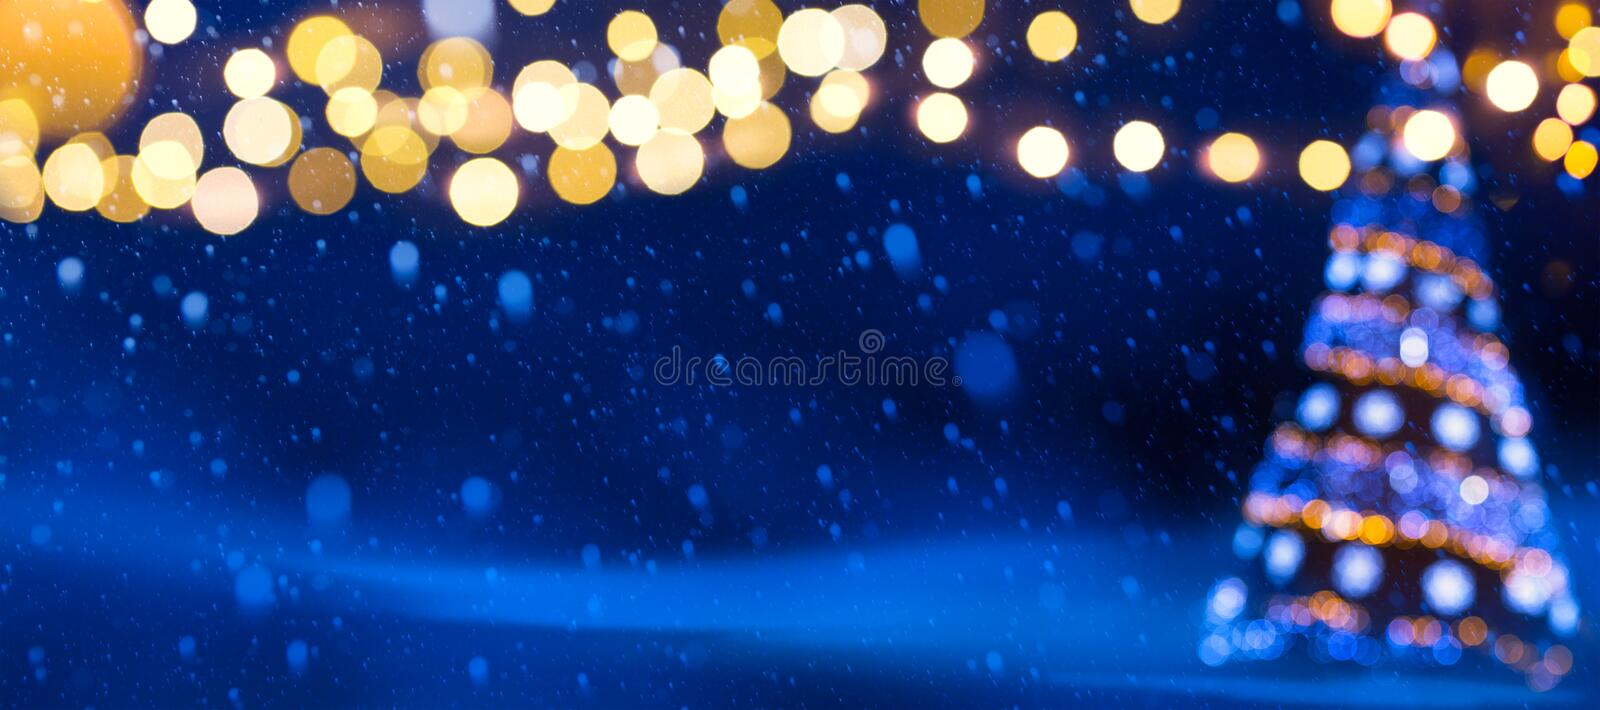 Art Christmas tree lights; Christmas banner background royalty free stock photos